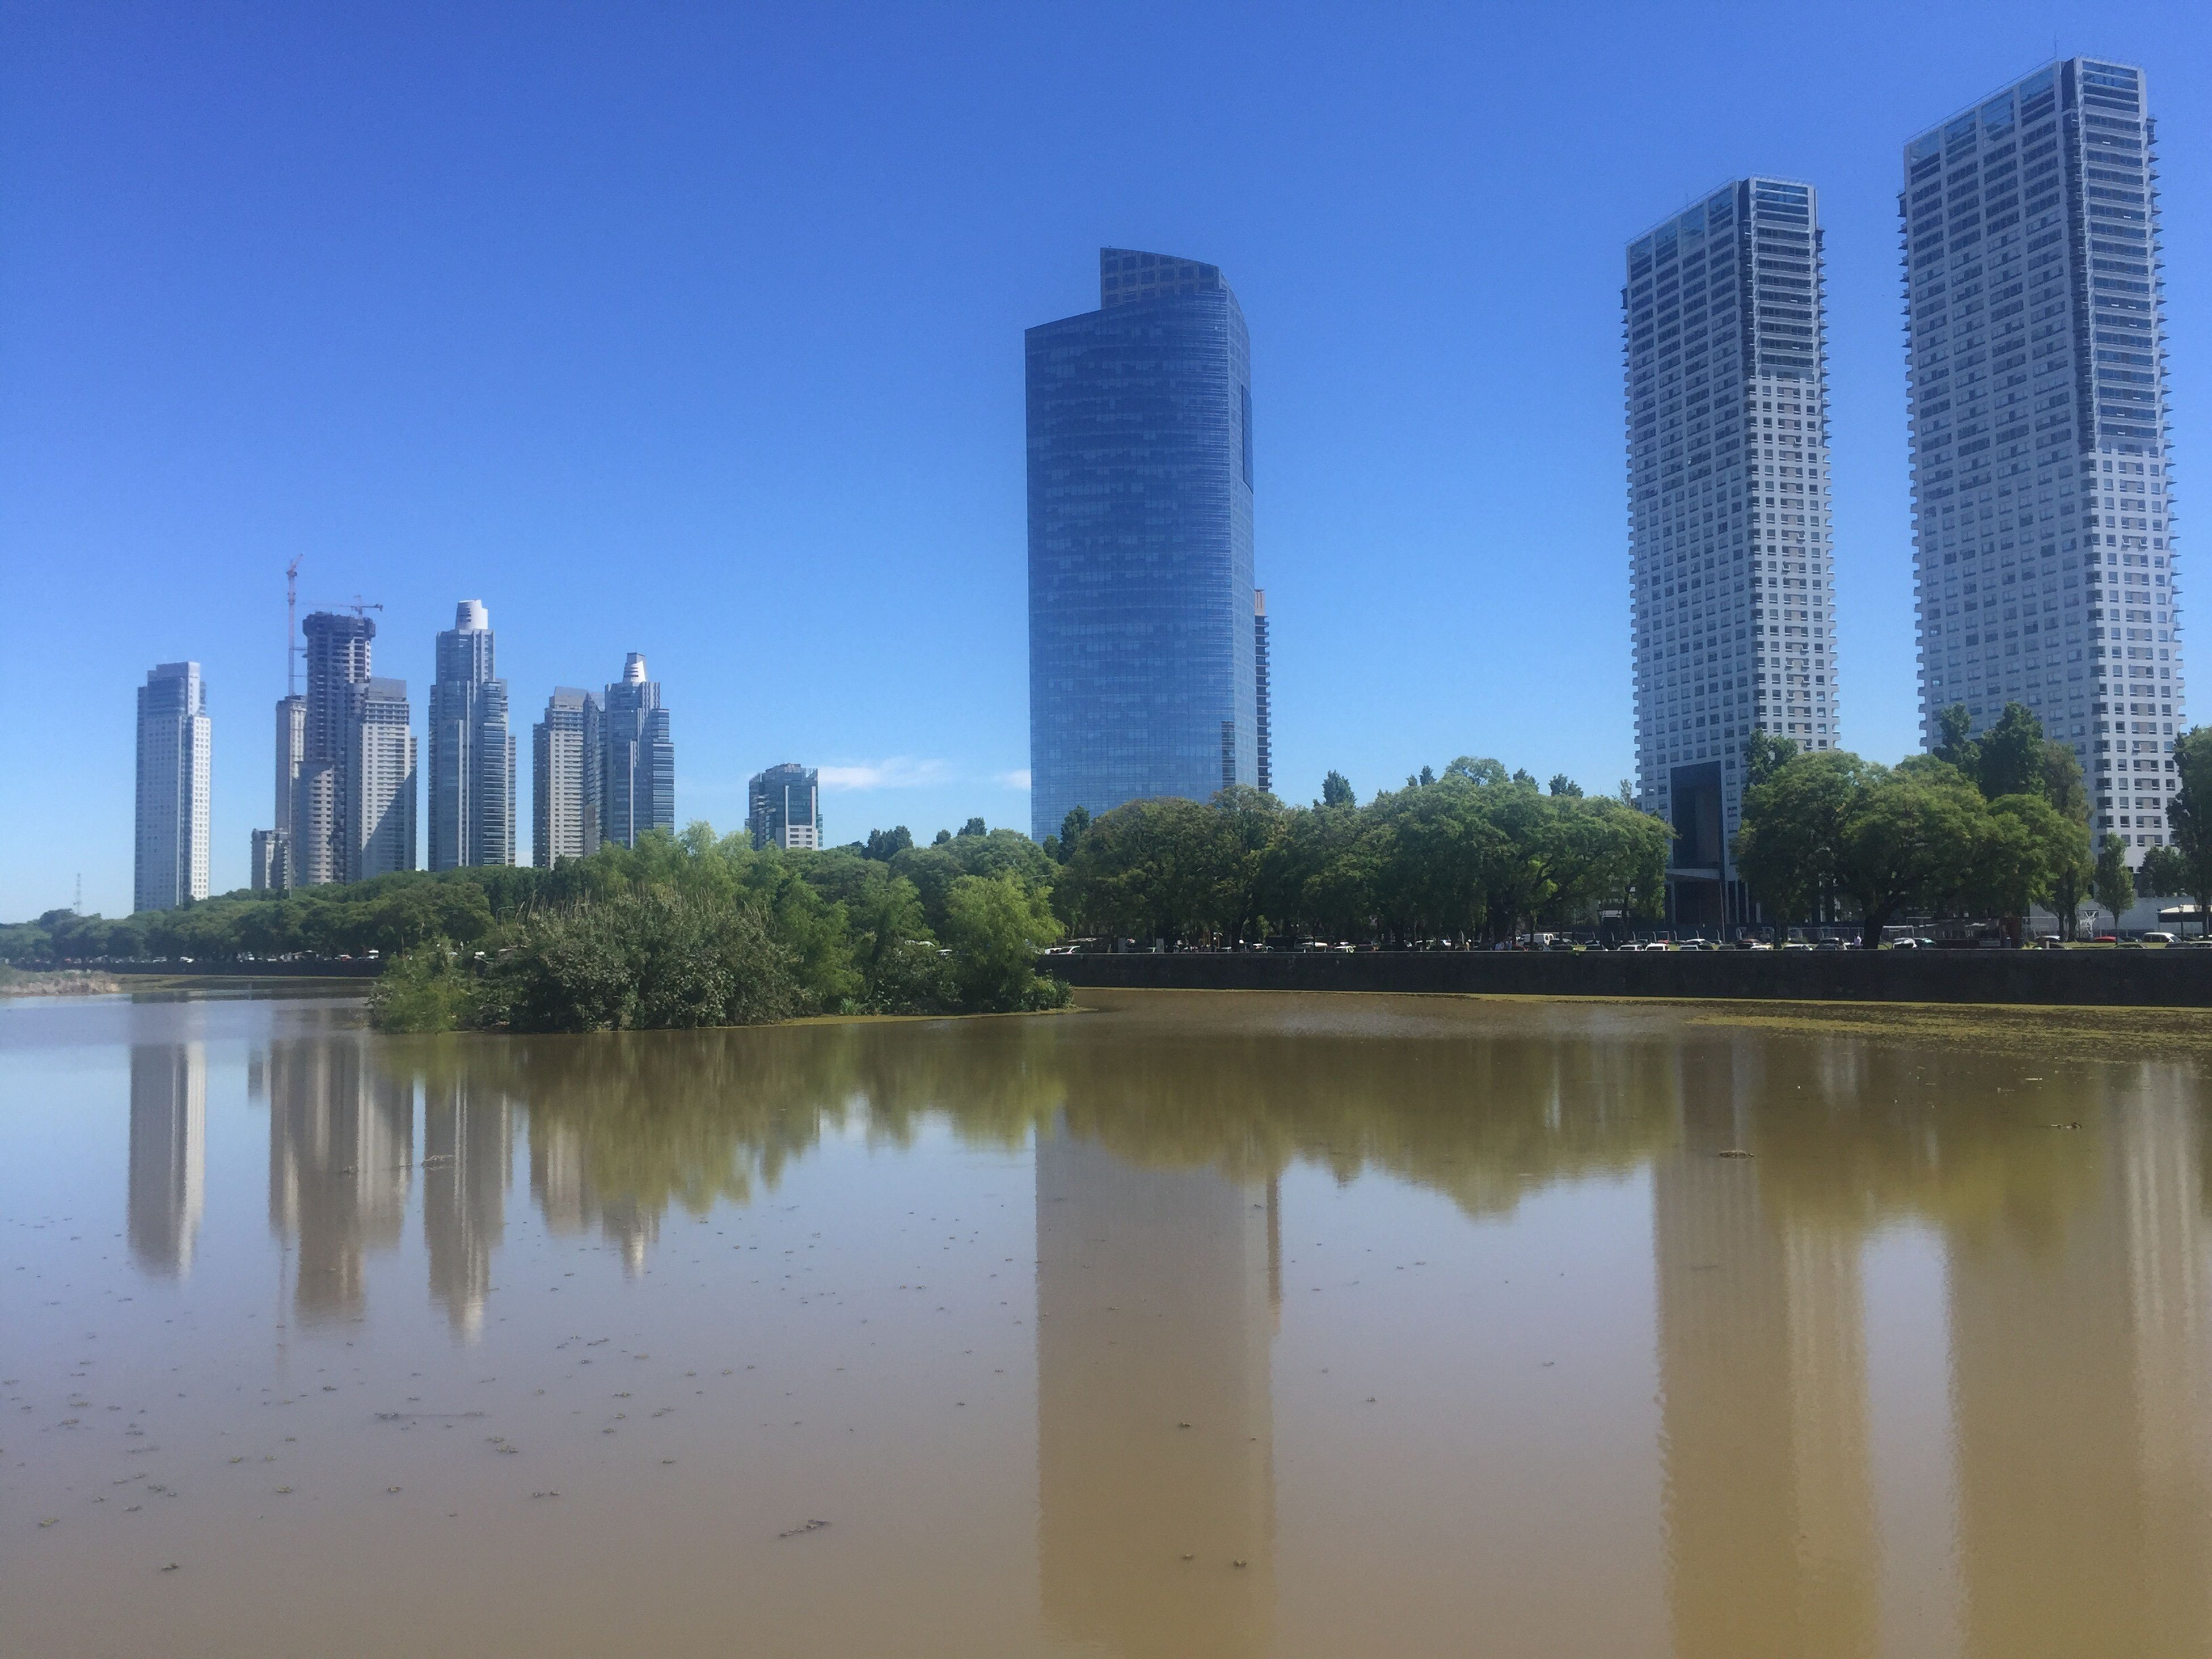 city, skyscraper, architecture, reflection, built structure, building exterior, water, tall - high, blue, clear sky, tower, modern, cityscape, travel destinations, urban skyline, sky, no people, day, outdoors, tree, growth, river, nature